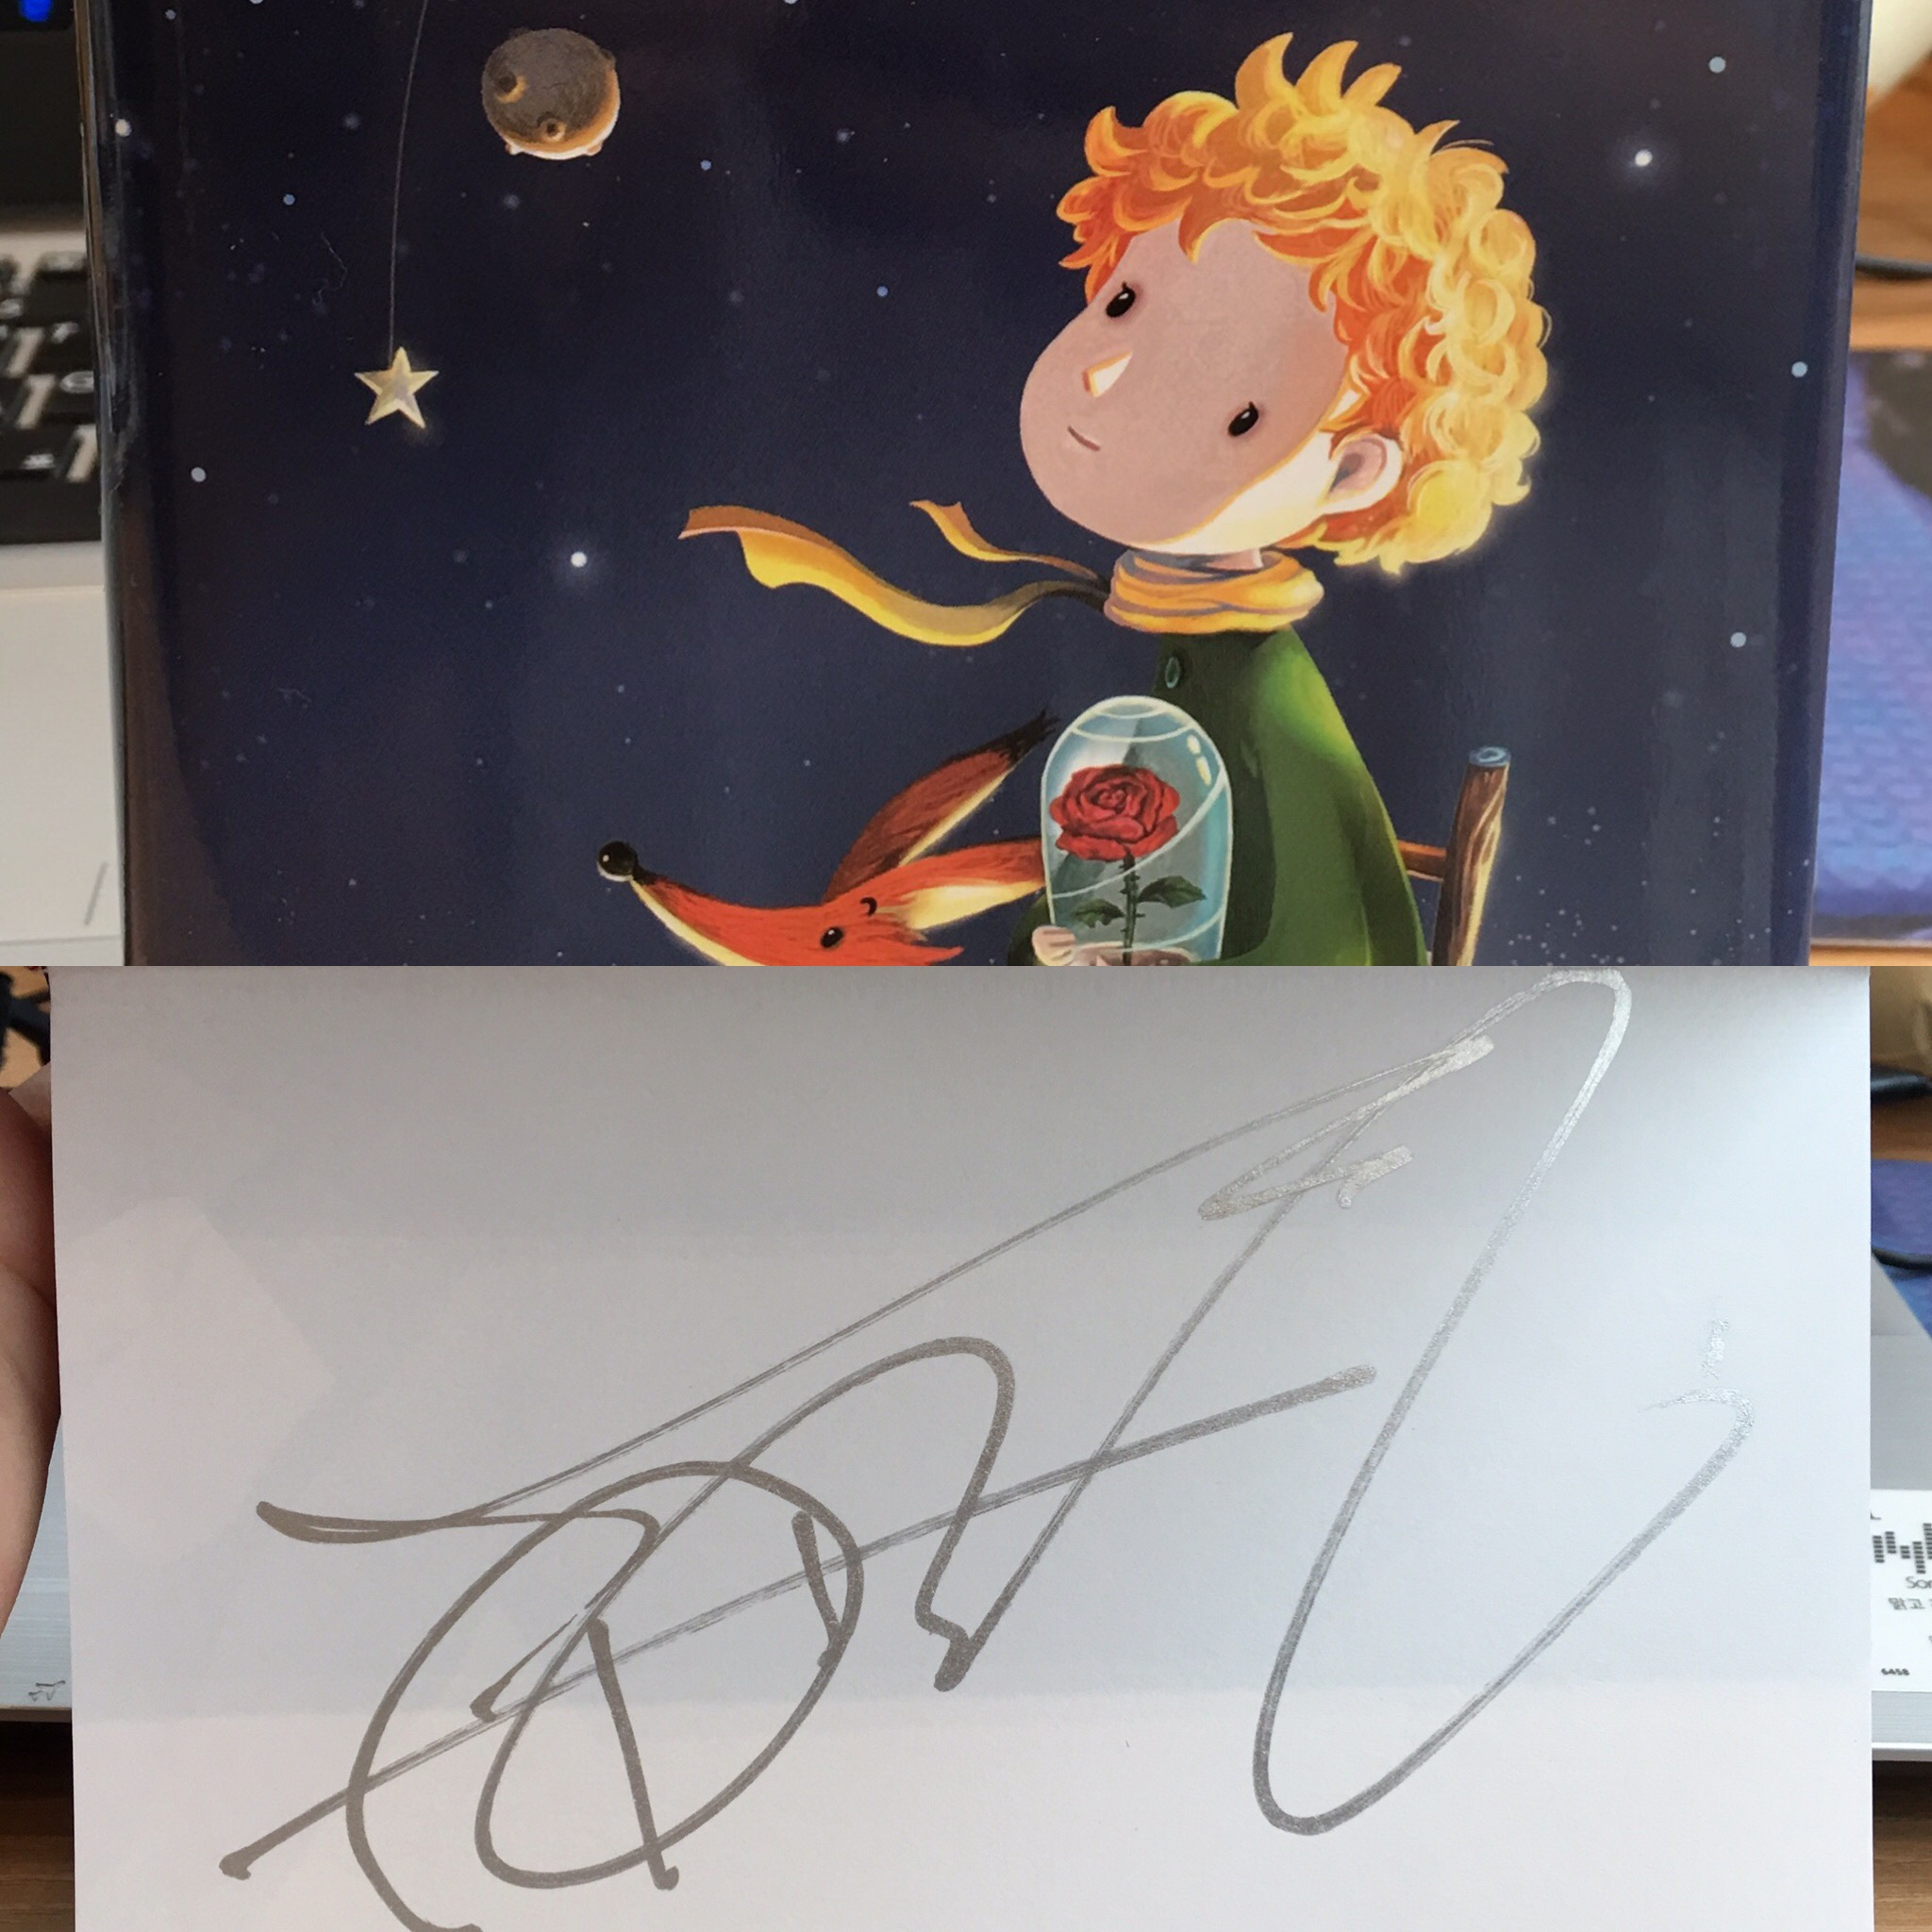 Park Kyung's The Little Prince book